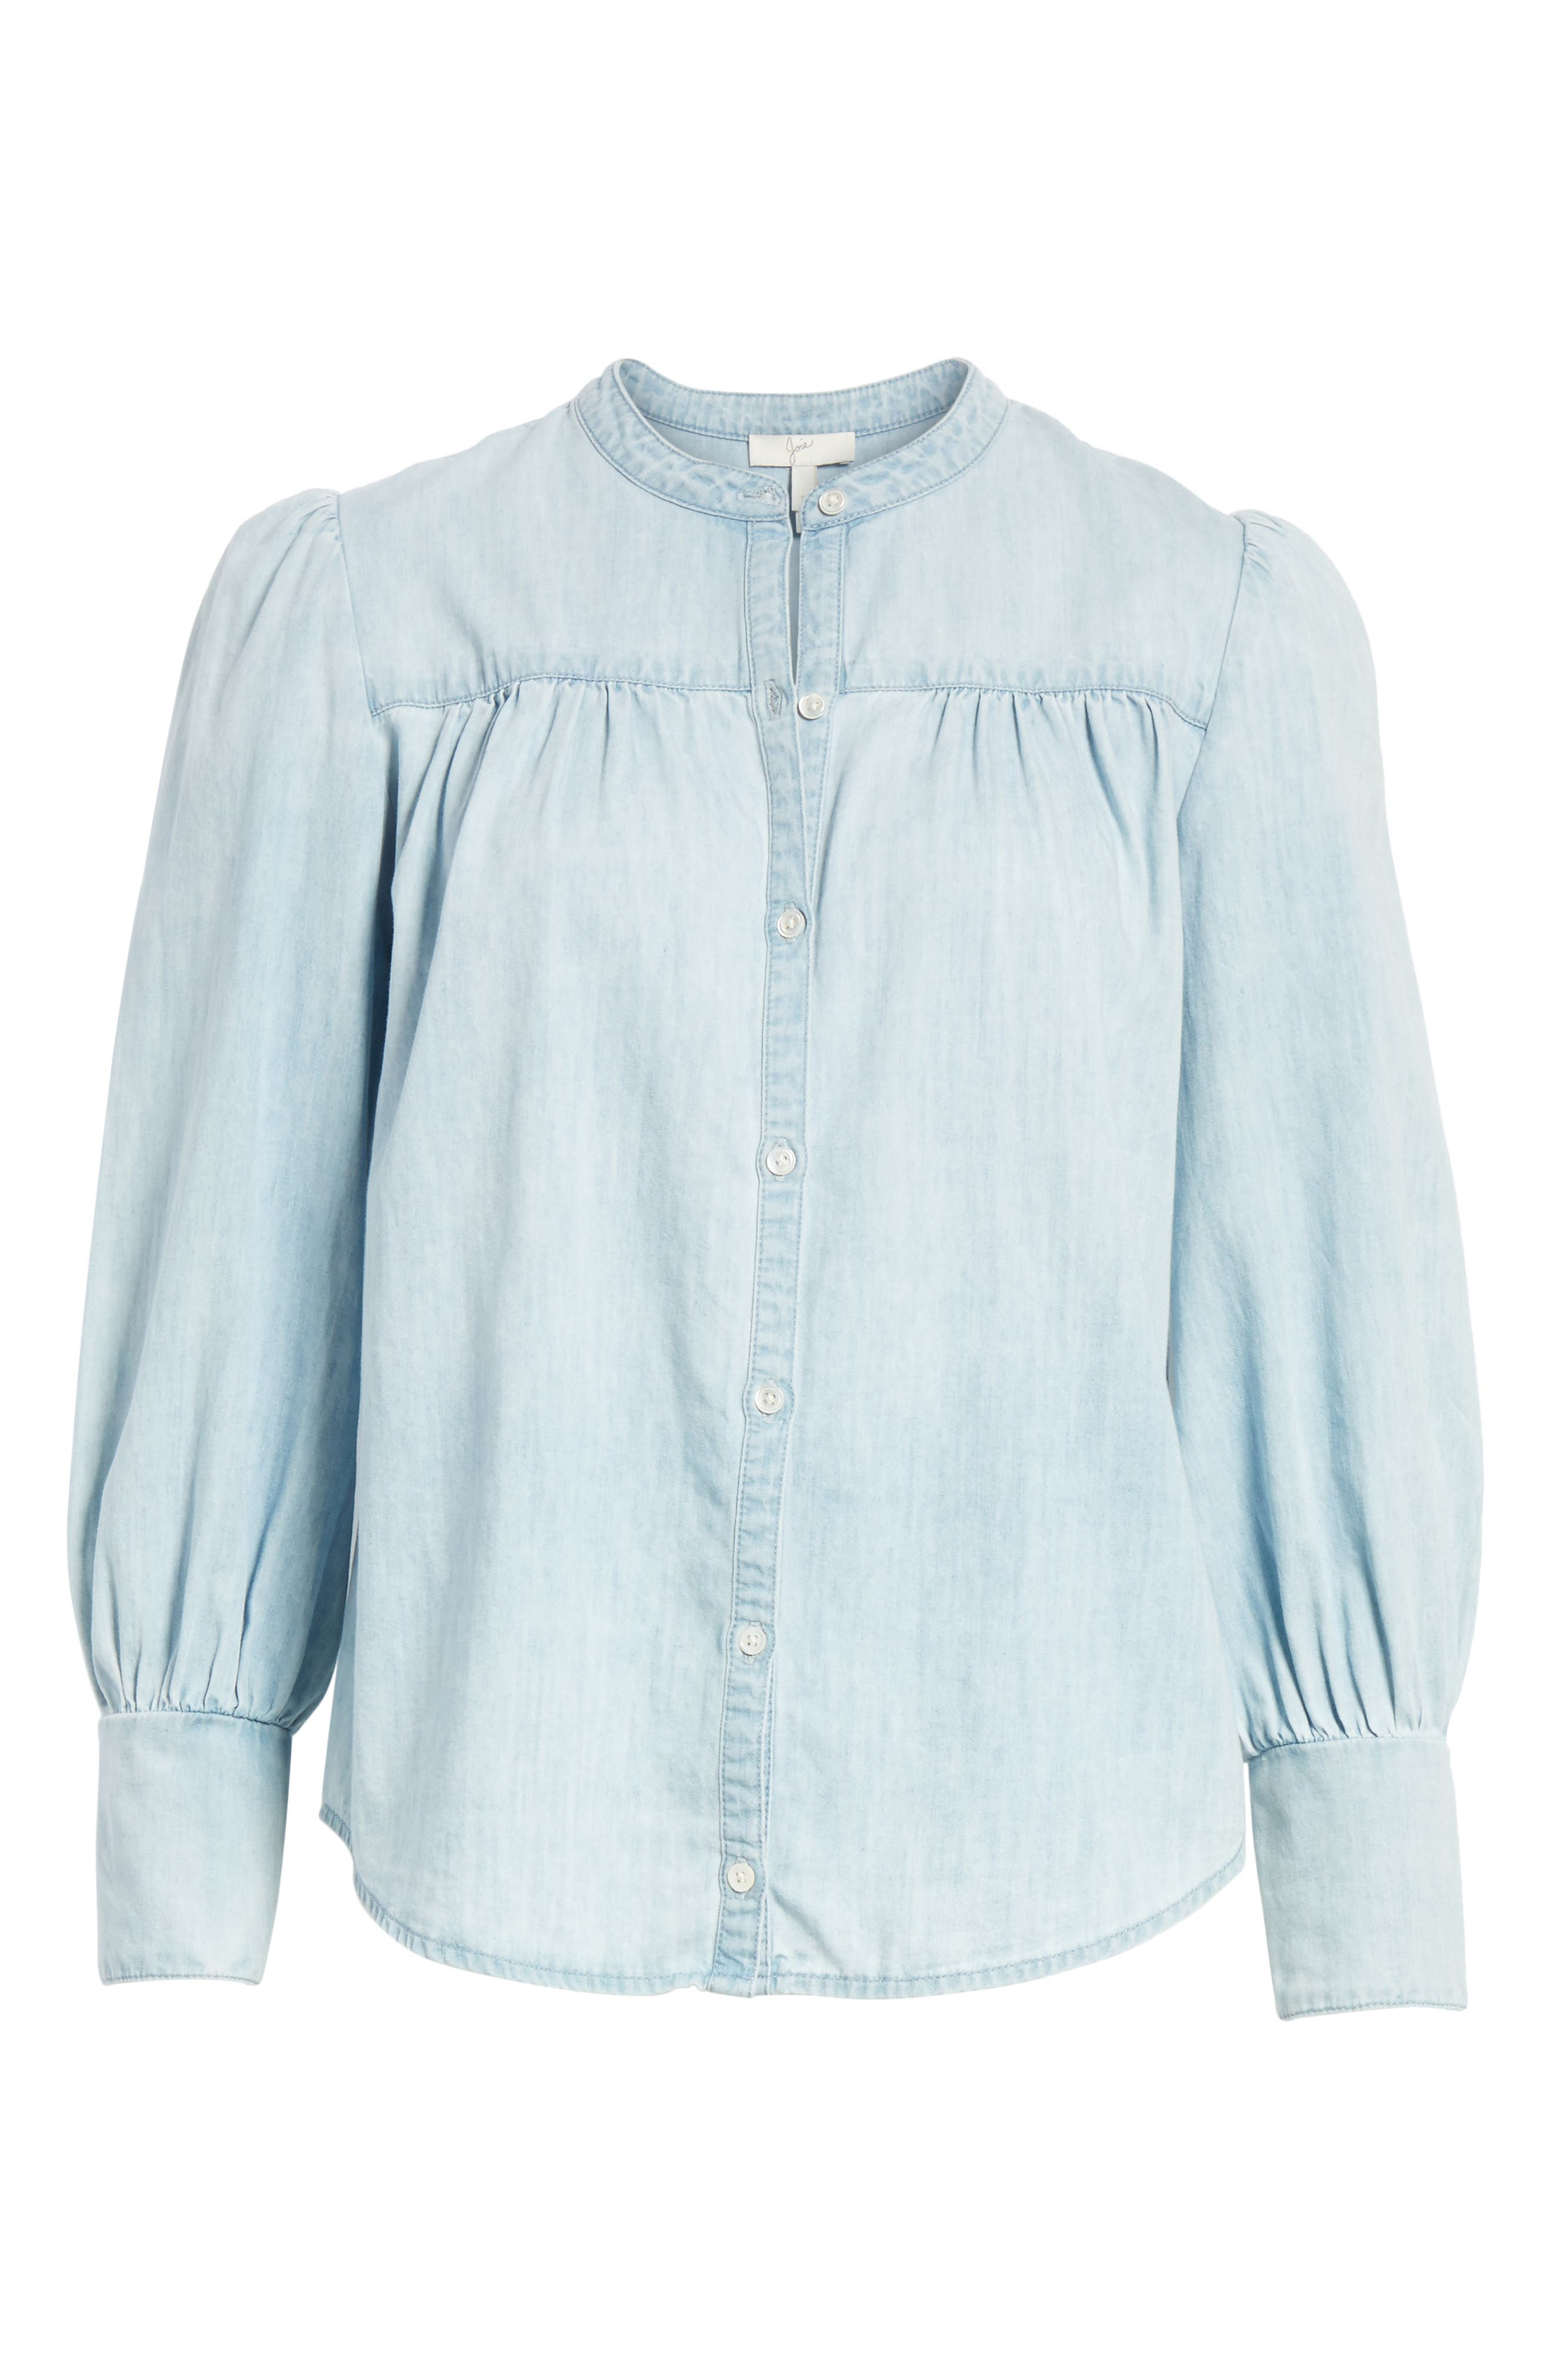 Aubrielle Silk Cotton Chambray Top,                             Alternate thumbnail 6, color,                             Western Fade